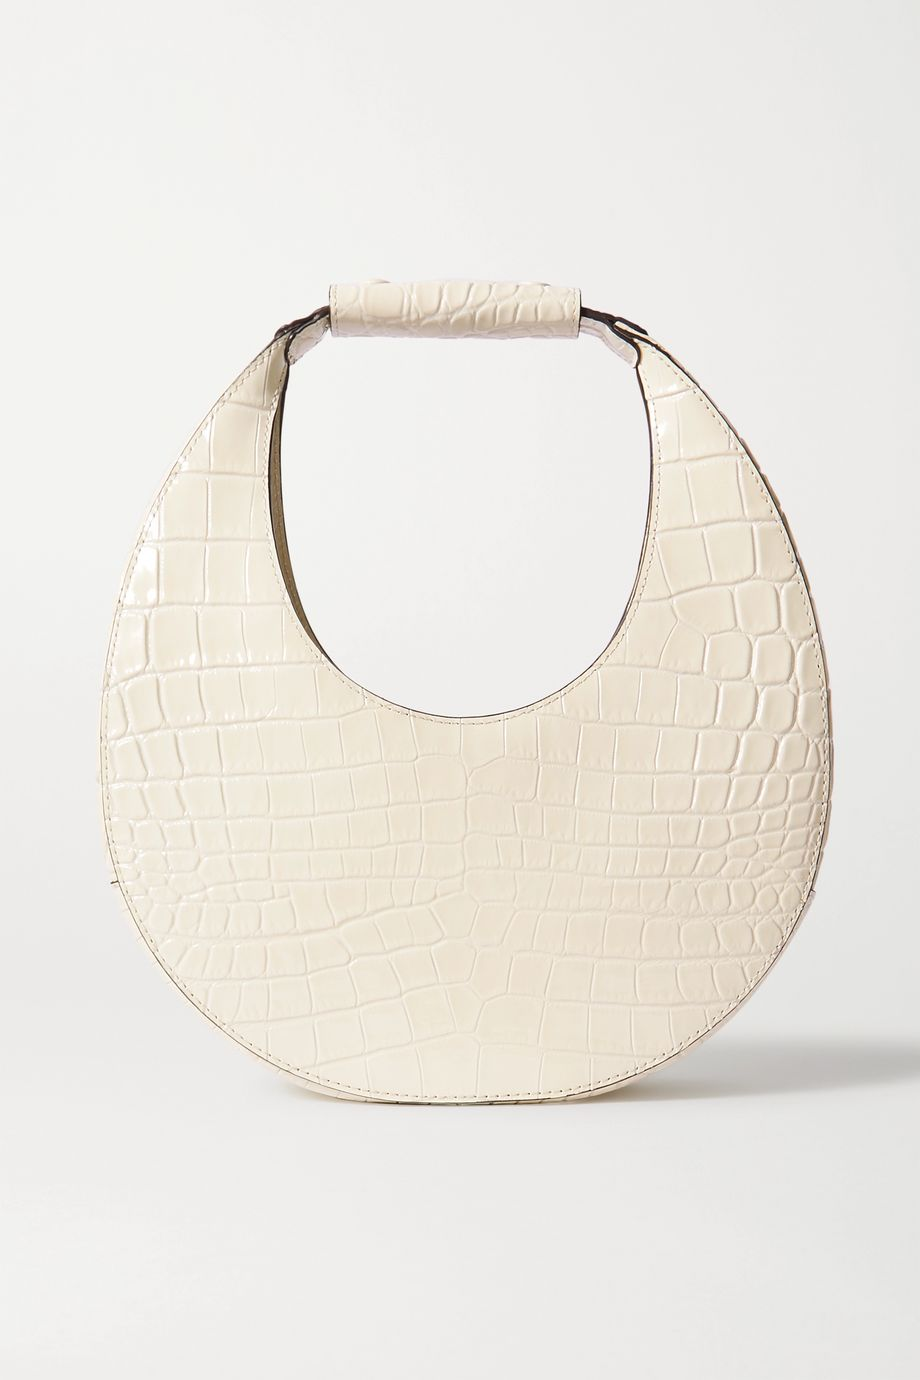 STAUD Moon croc-effect patent-leather tote